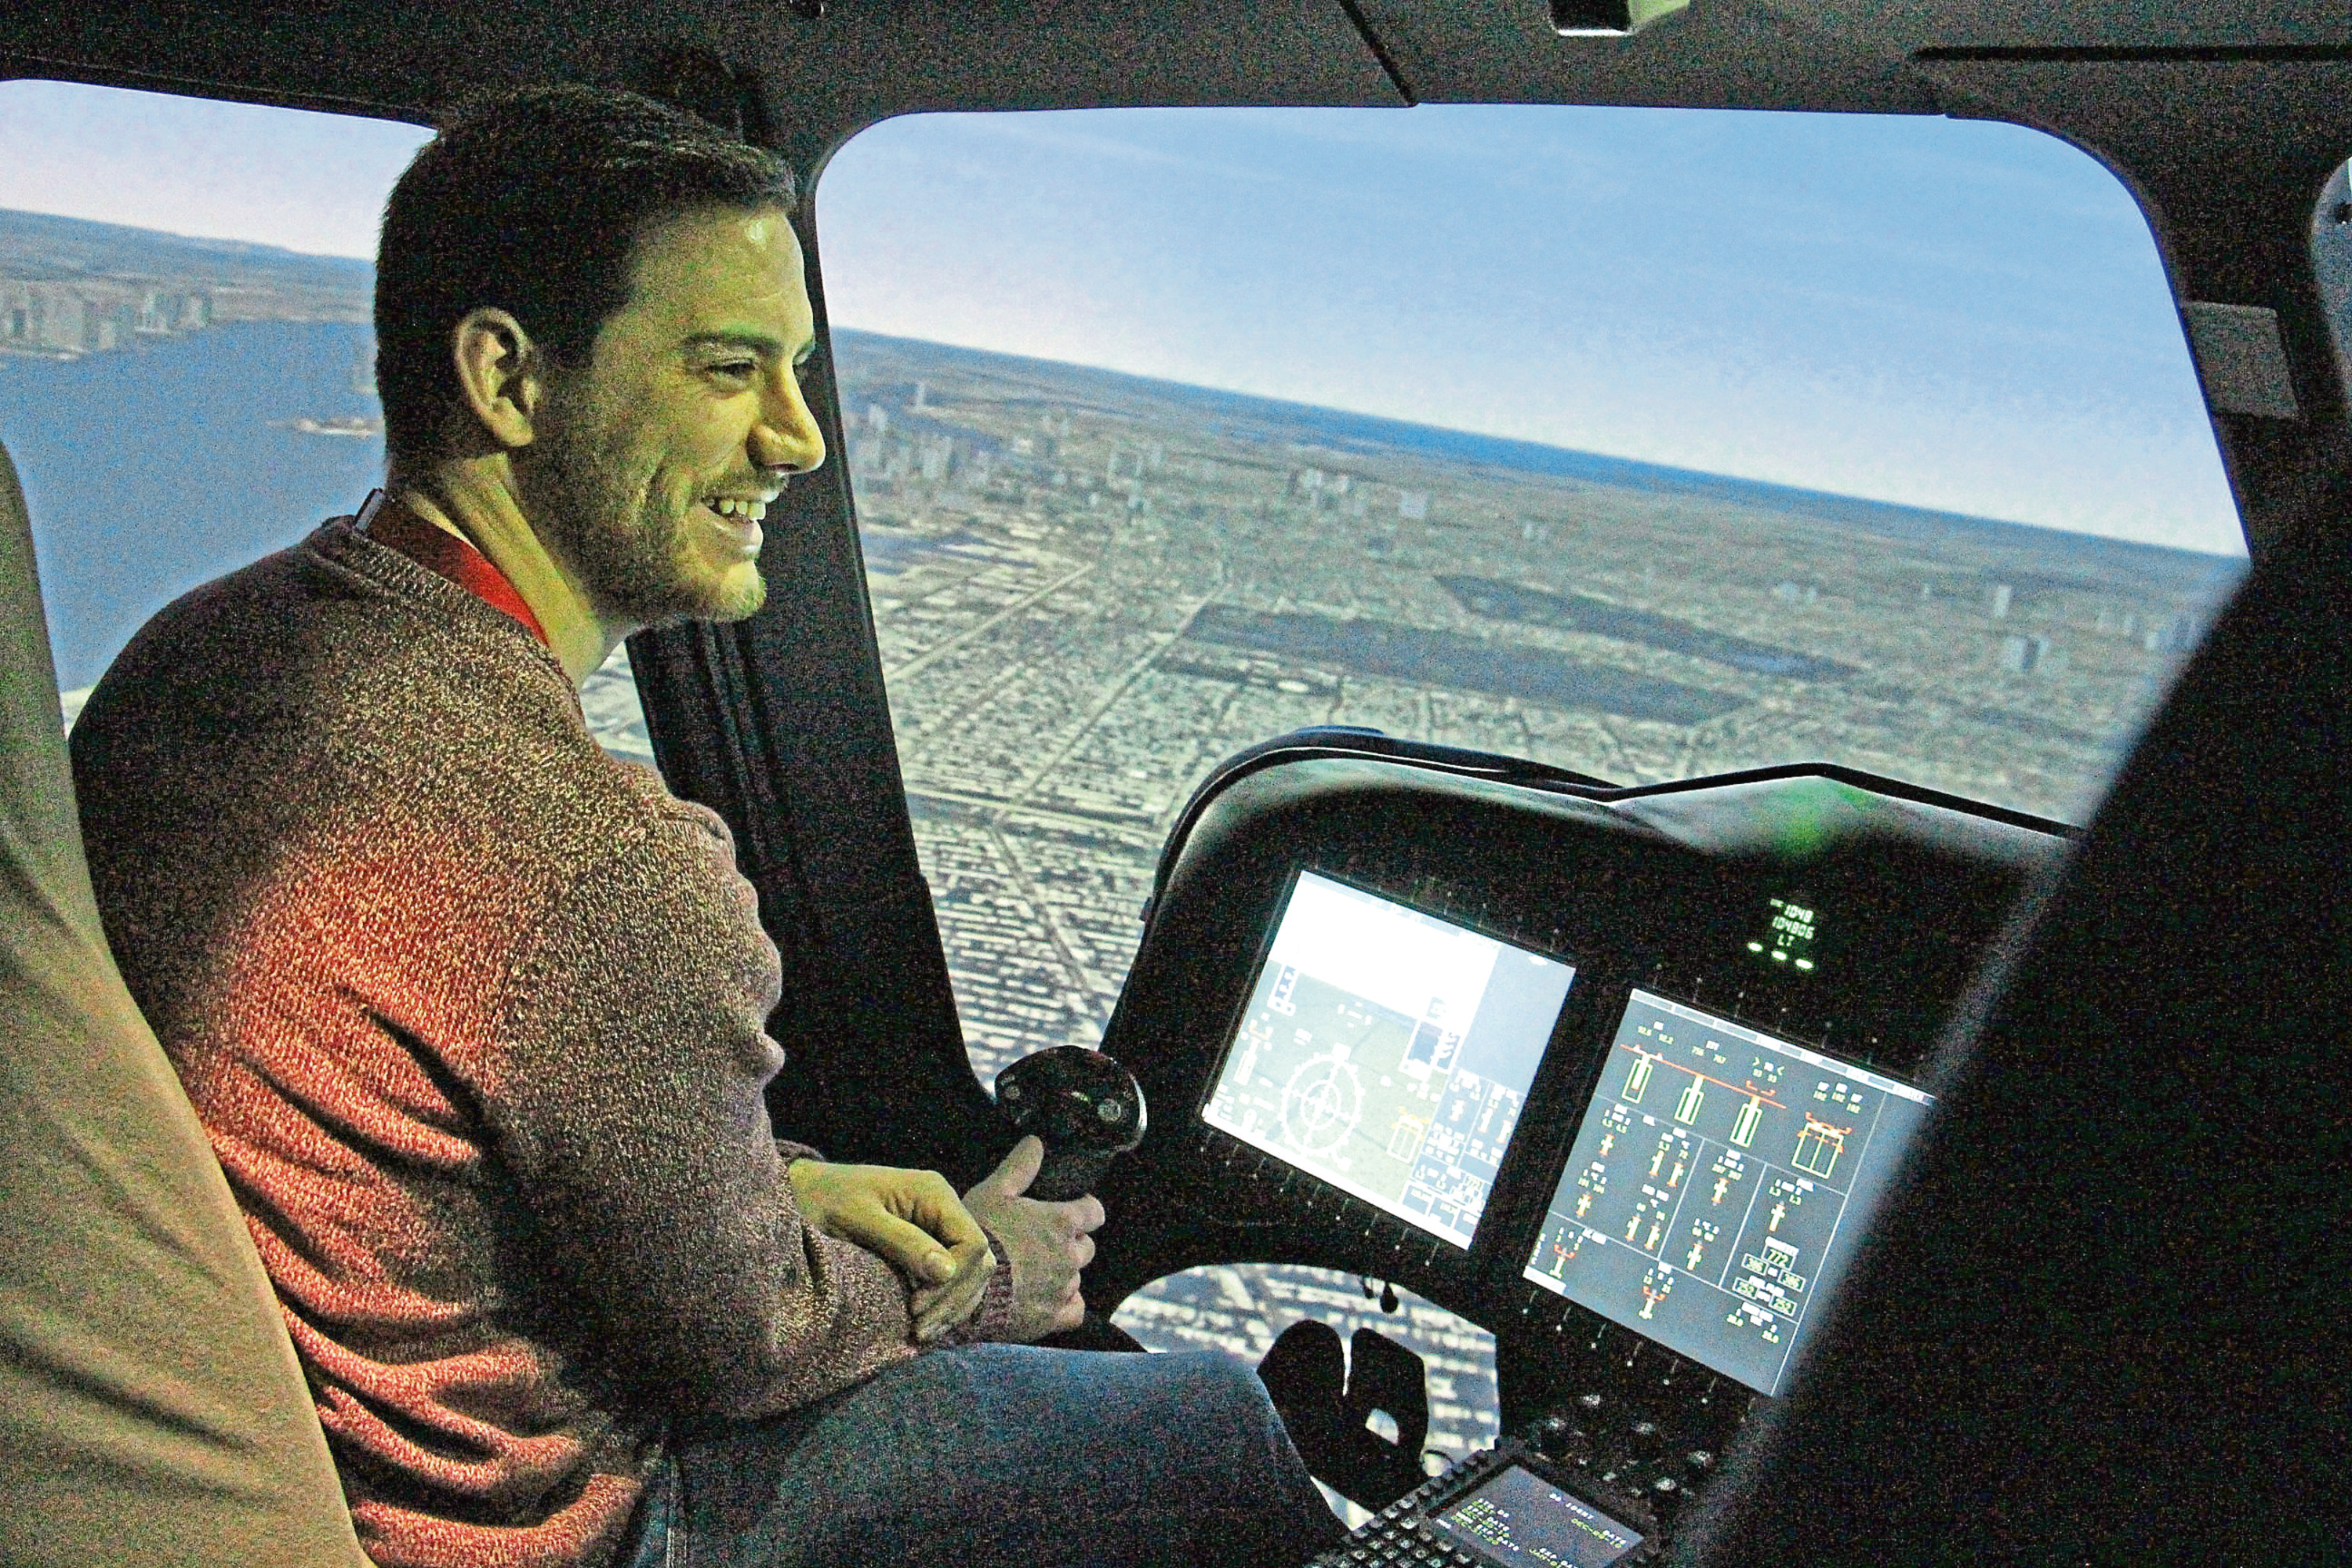 A HELICOPTER operator has raised thousands for charity by donating flight simulator tickets. Bristow Helicopters offered 40 flight experiences to members of the public, with all proceeds going to a number of charities here in the north-east.  The firm's training hall at Dyce, which has four helicopter simulators, is normally reserved only for trainees and helicopter pilots.